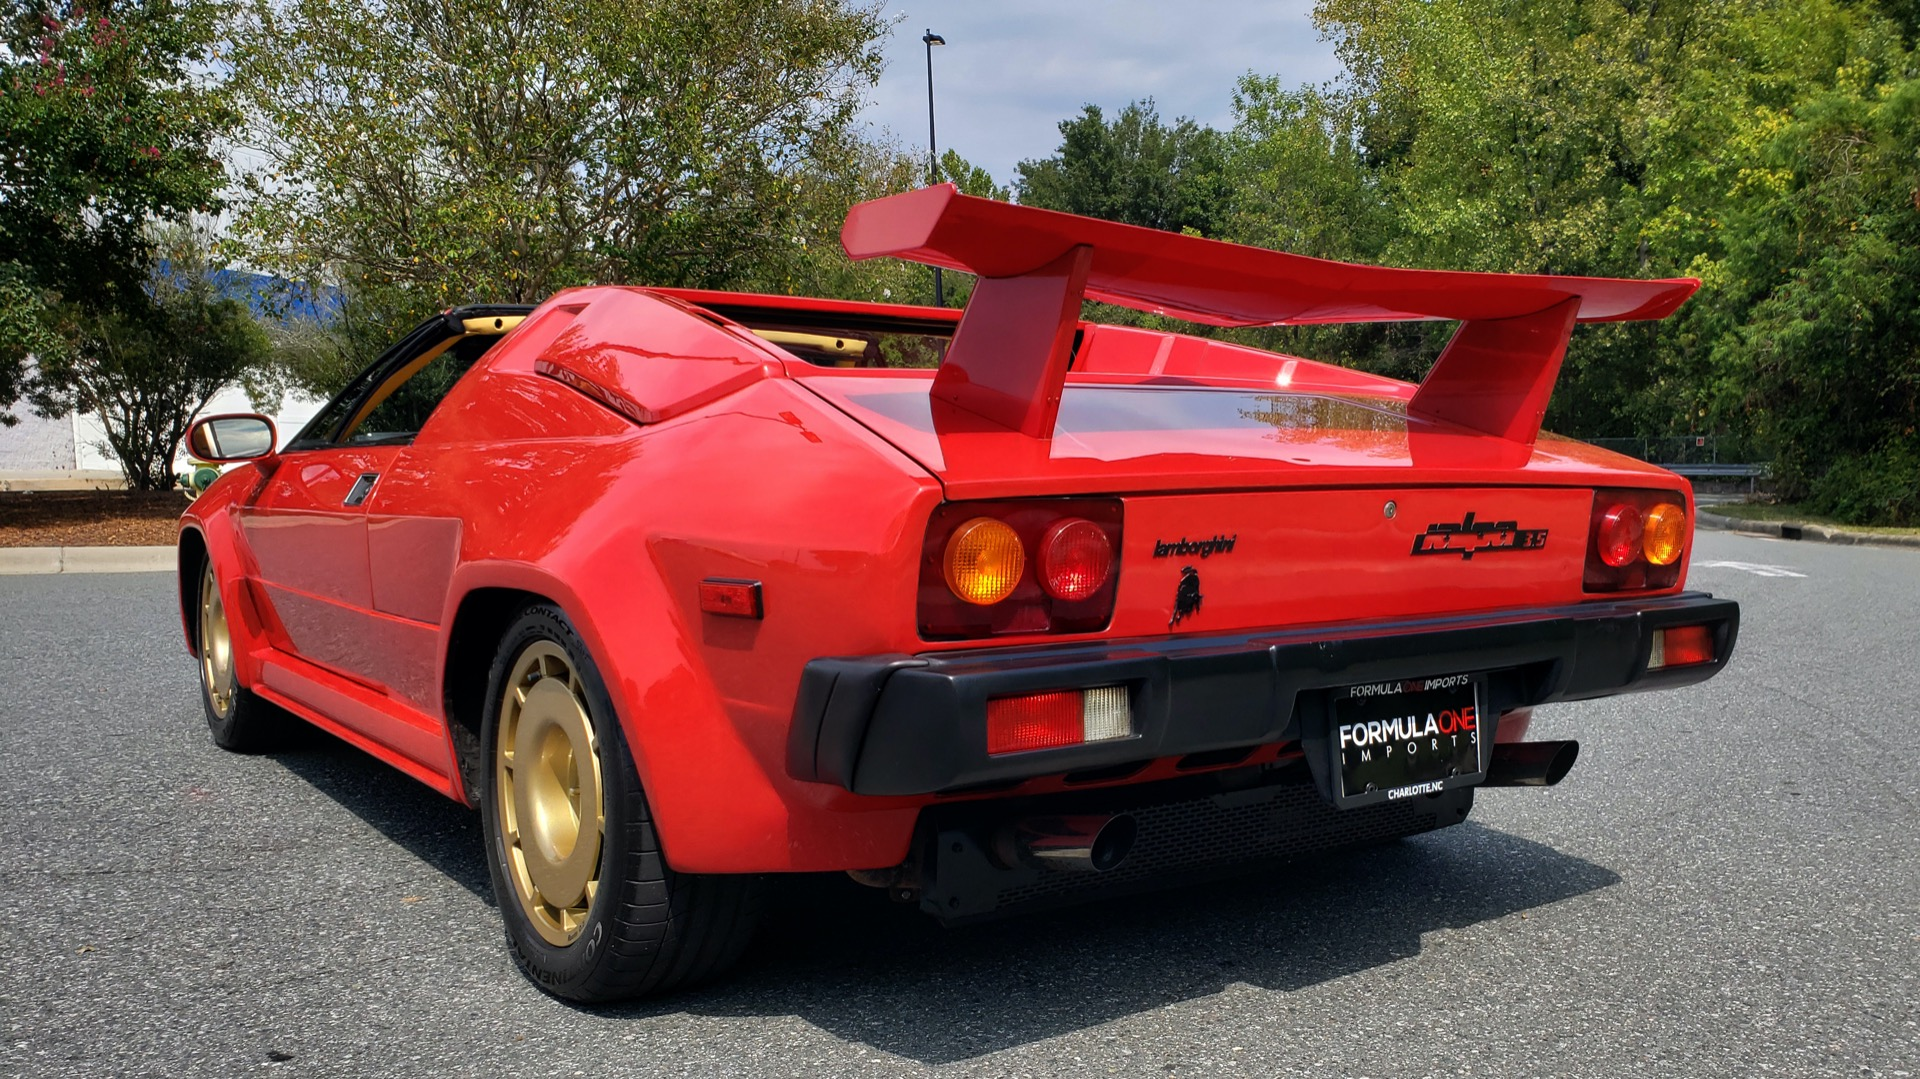 Used 1988 Lamborghini JALPA 3.5 / 5-SPD MANUAL / LOW MILES / EXCELLENT CONDITION for sale Sold at Formula Imports in Charlotte NC 28227 26